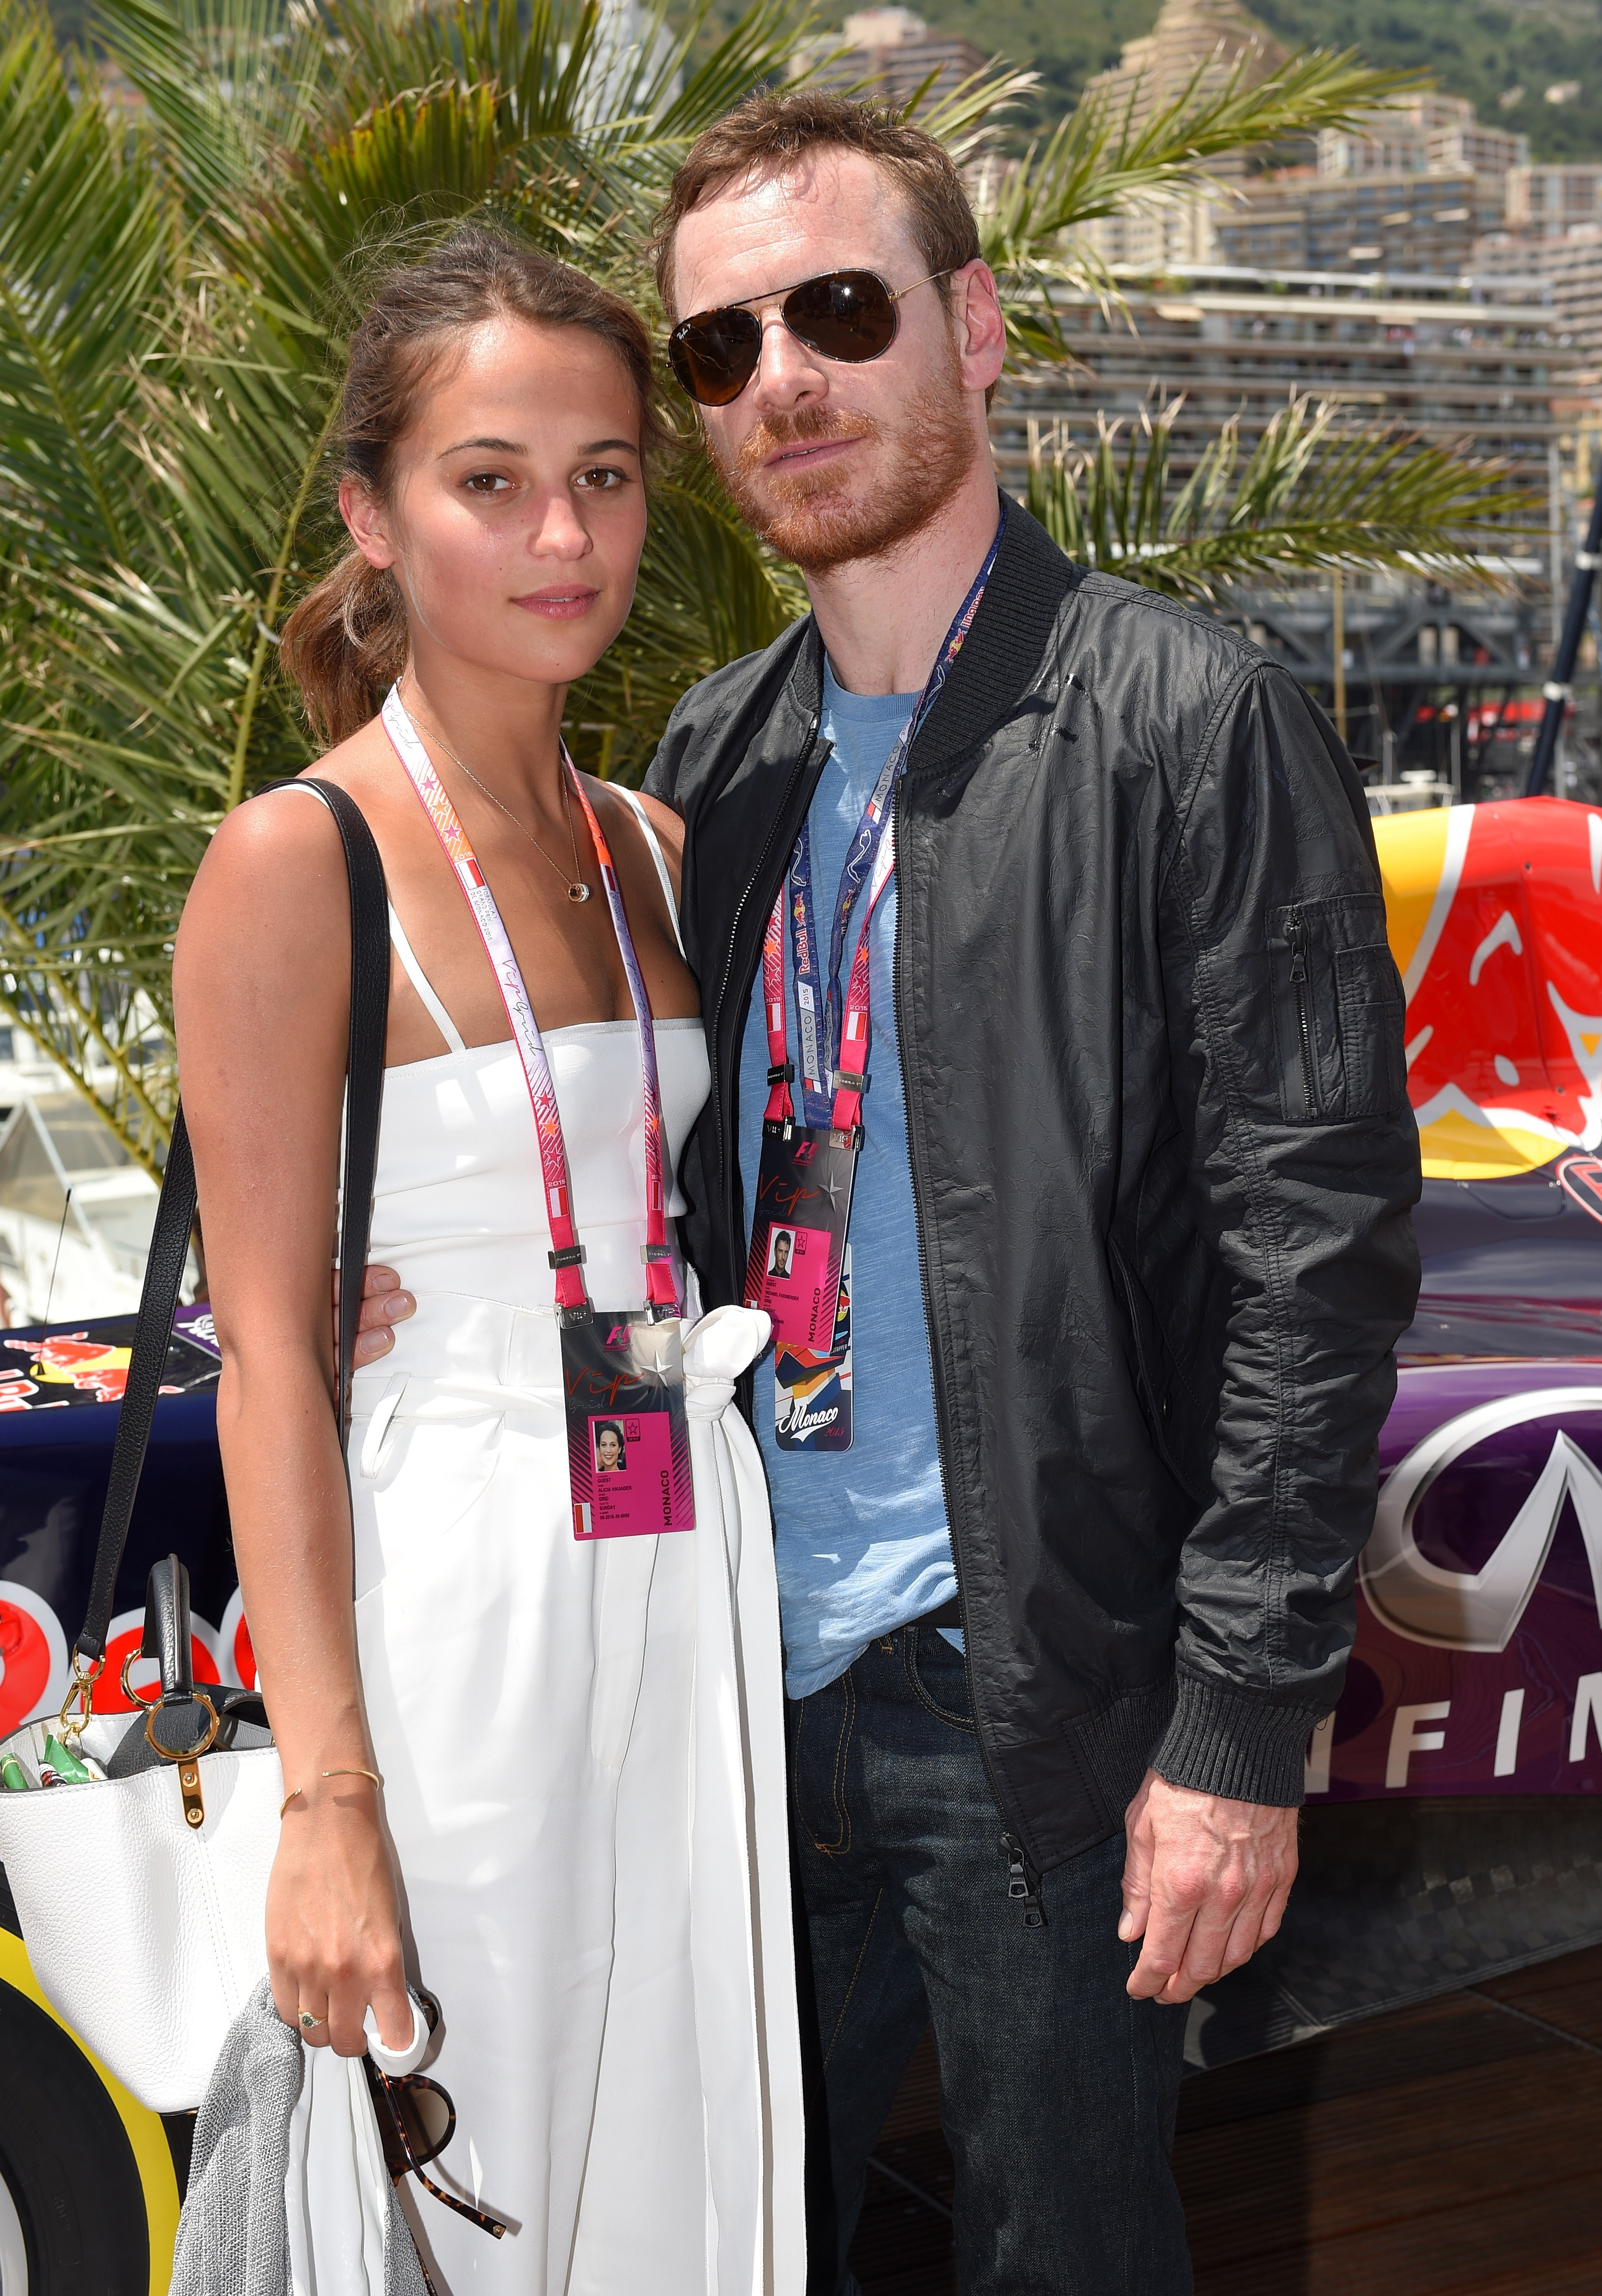 Michael Fassbender, Alicia Vikander recall falling in love on set